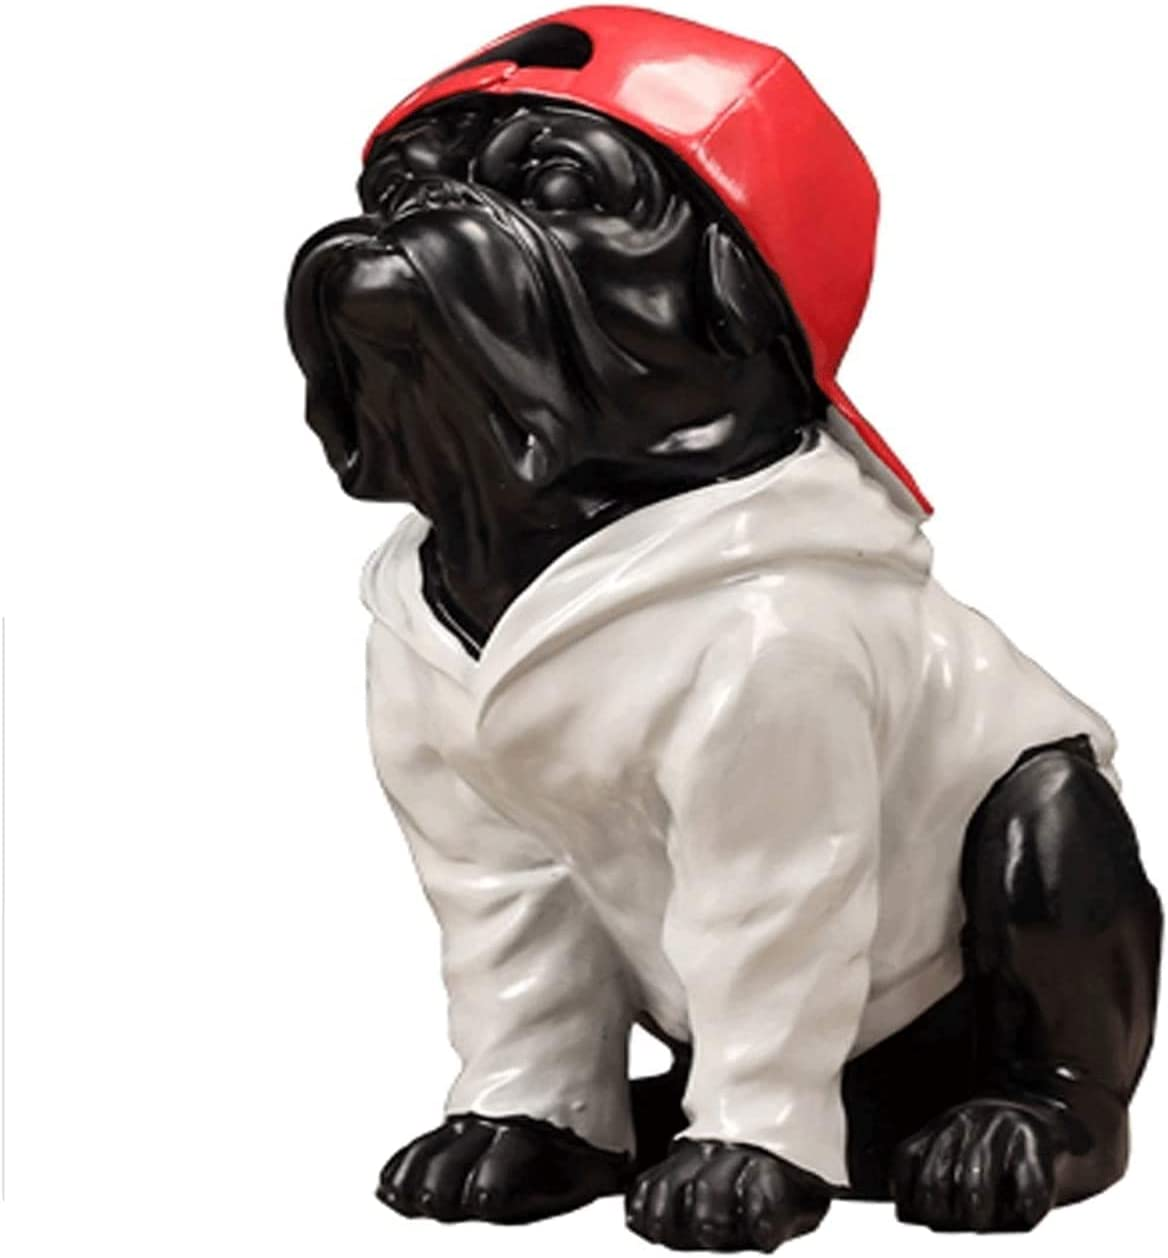 TEAYASON Sculptures Statues Dog Decoration Hat Red Online limited product Creative with Limited price